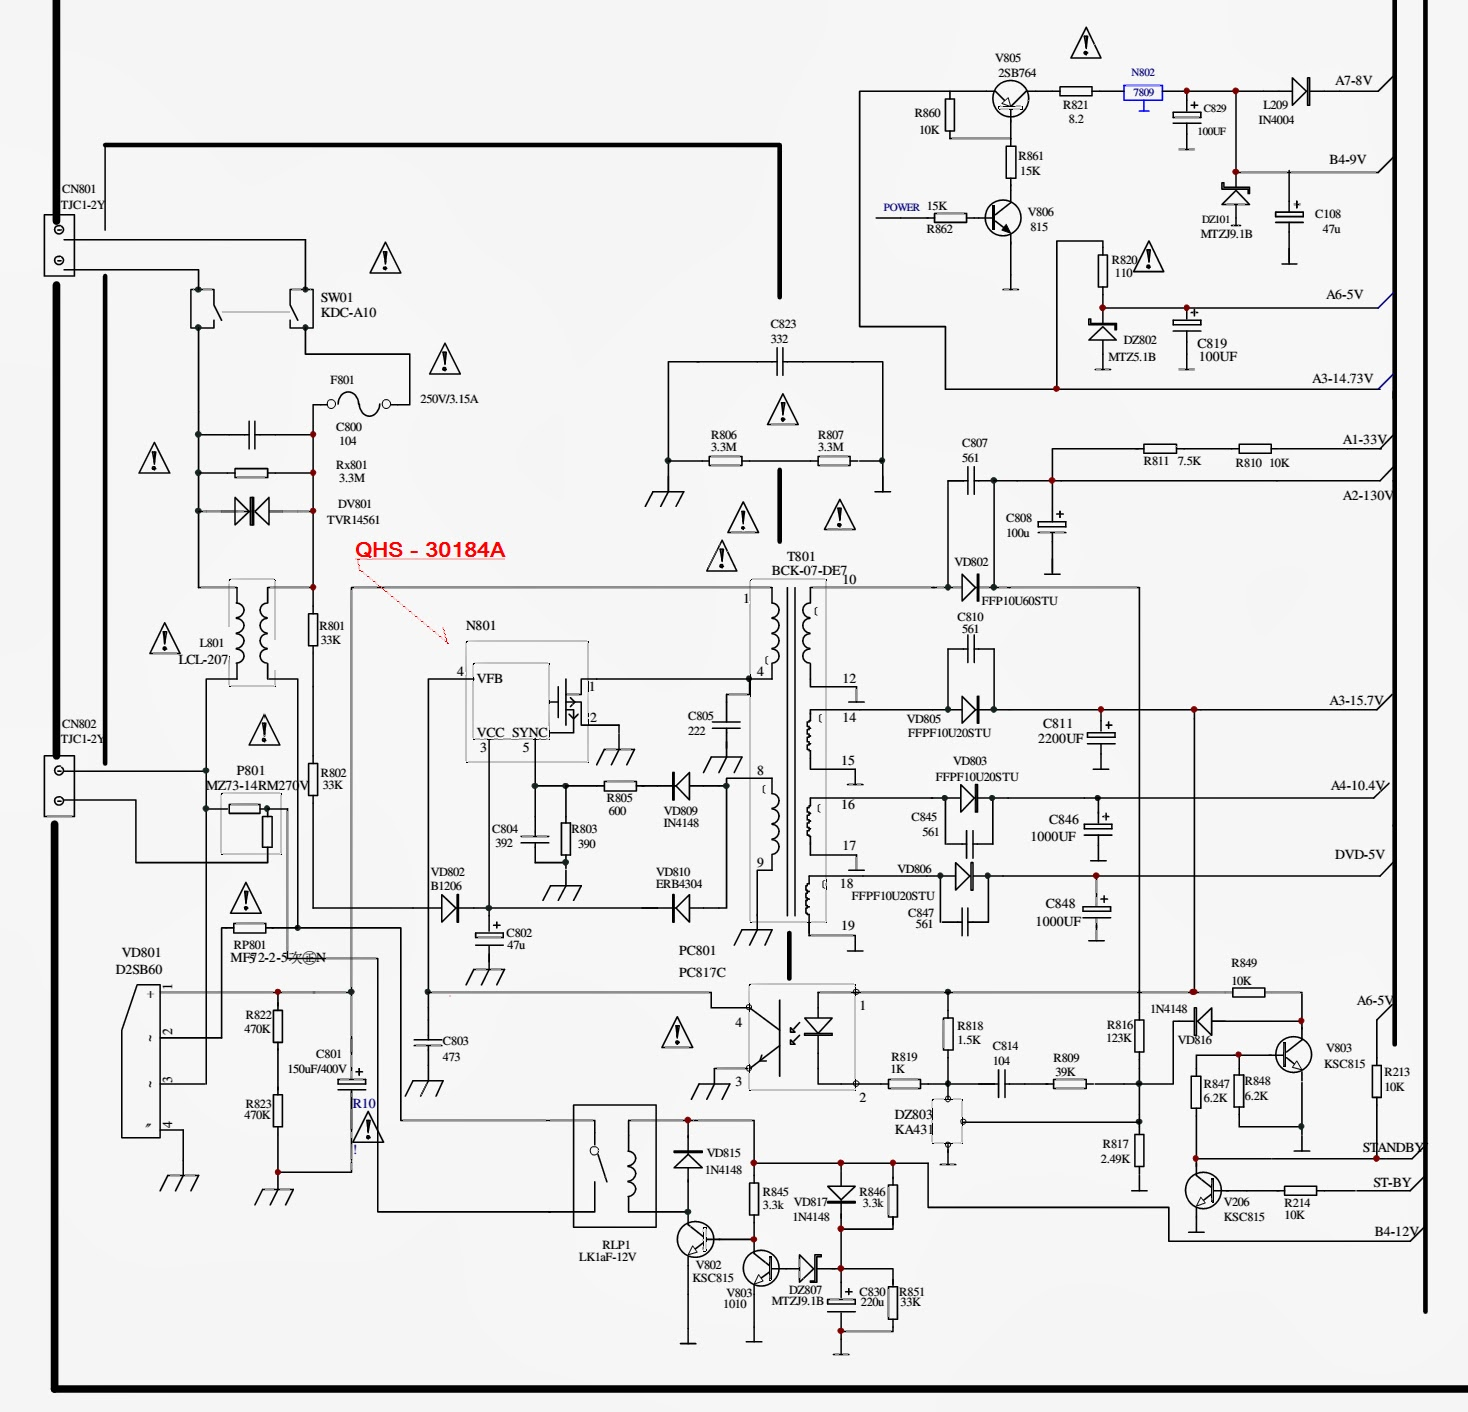 hyundai elantra radio wiring diagram images diagram wiring diagrams pictures wiring diagrams